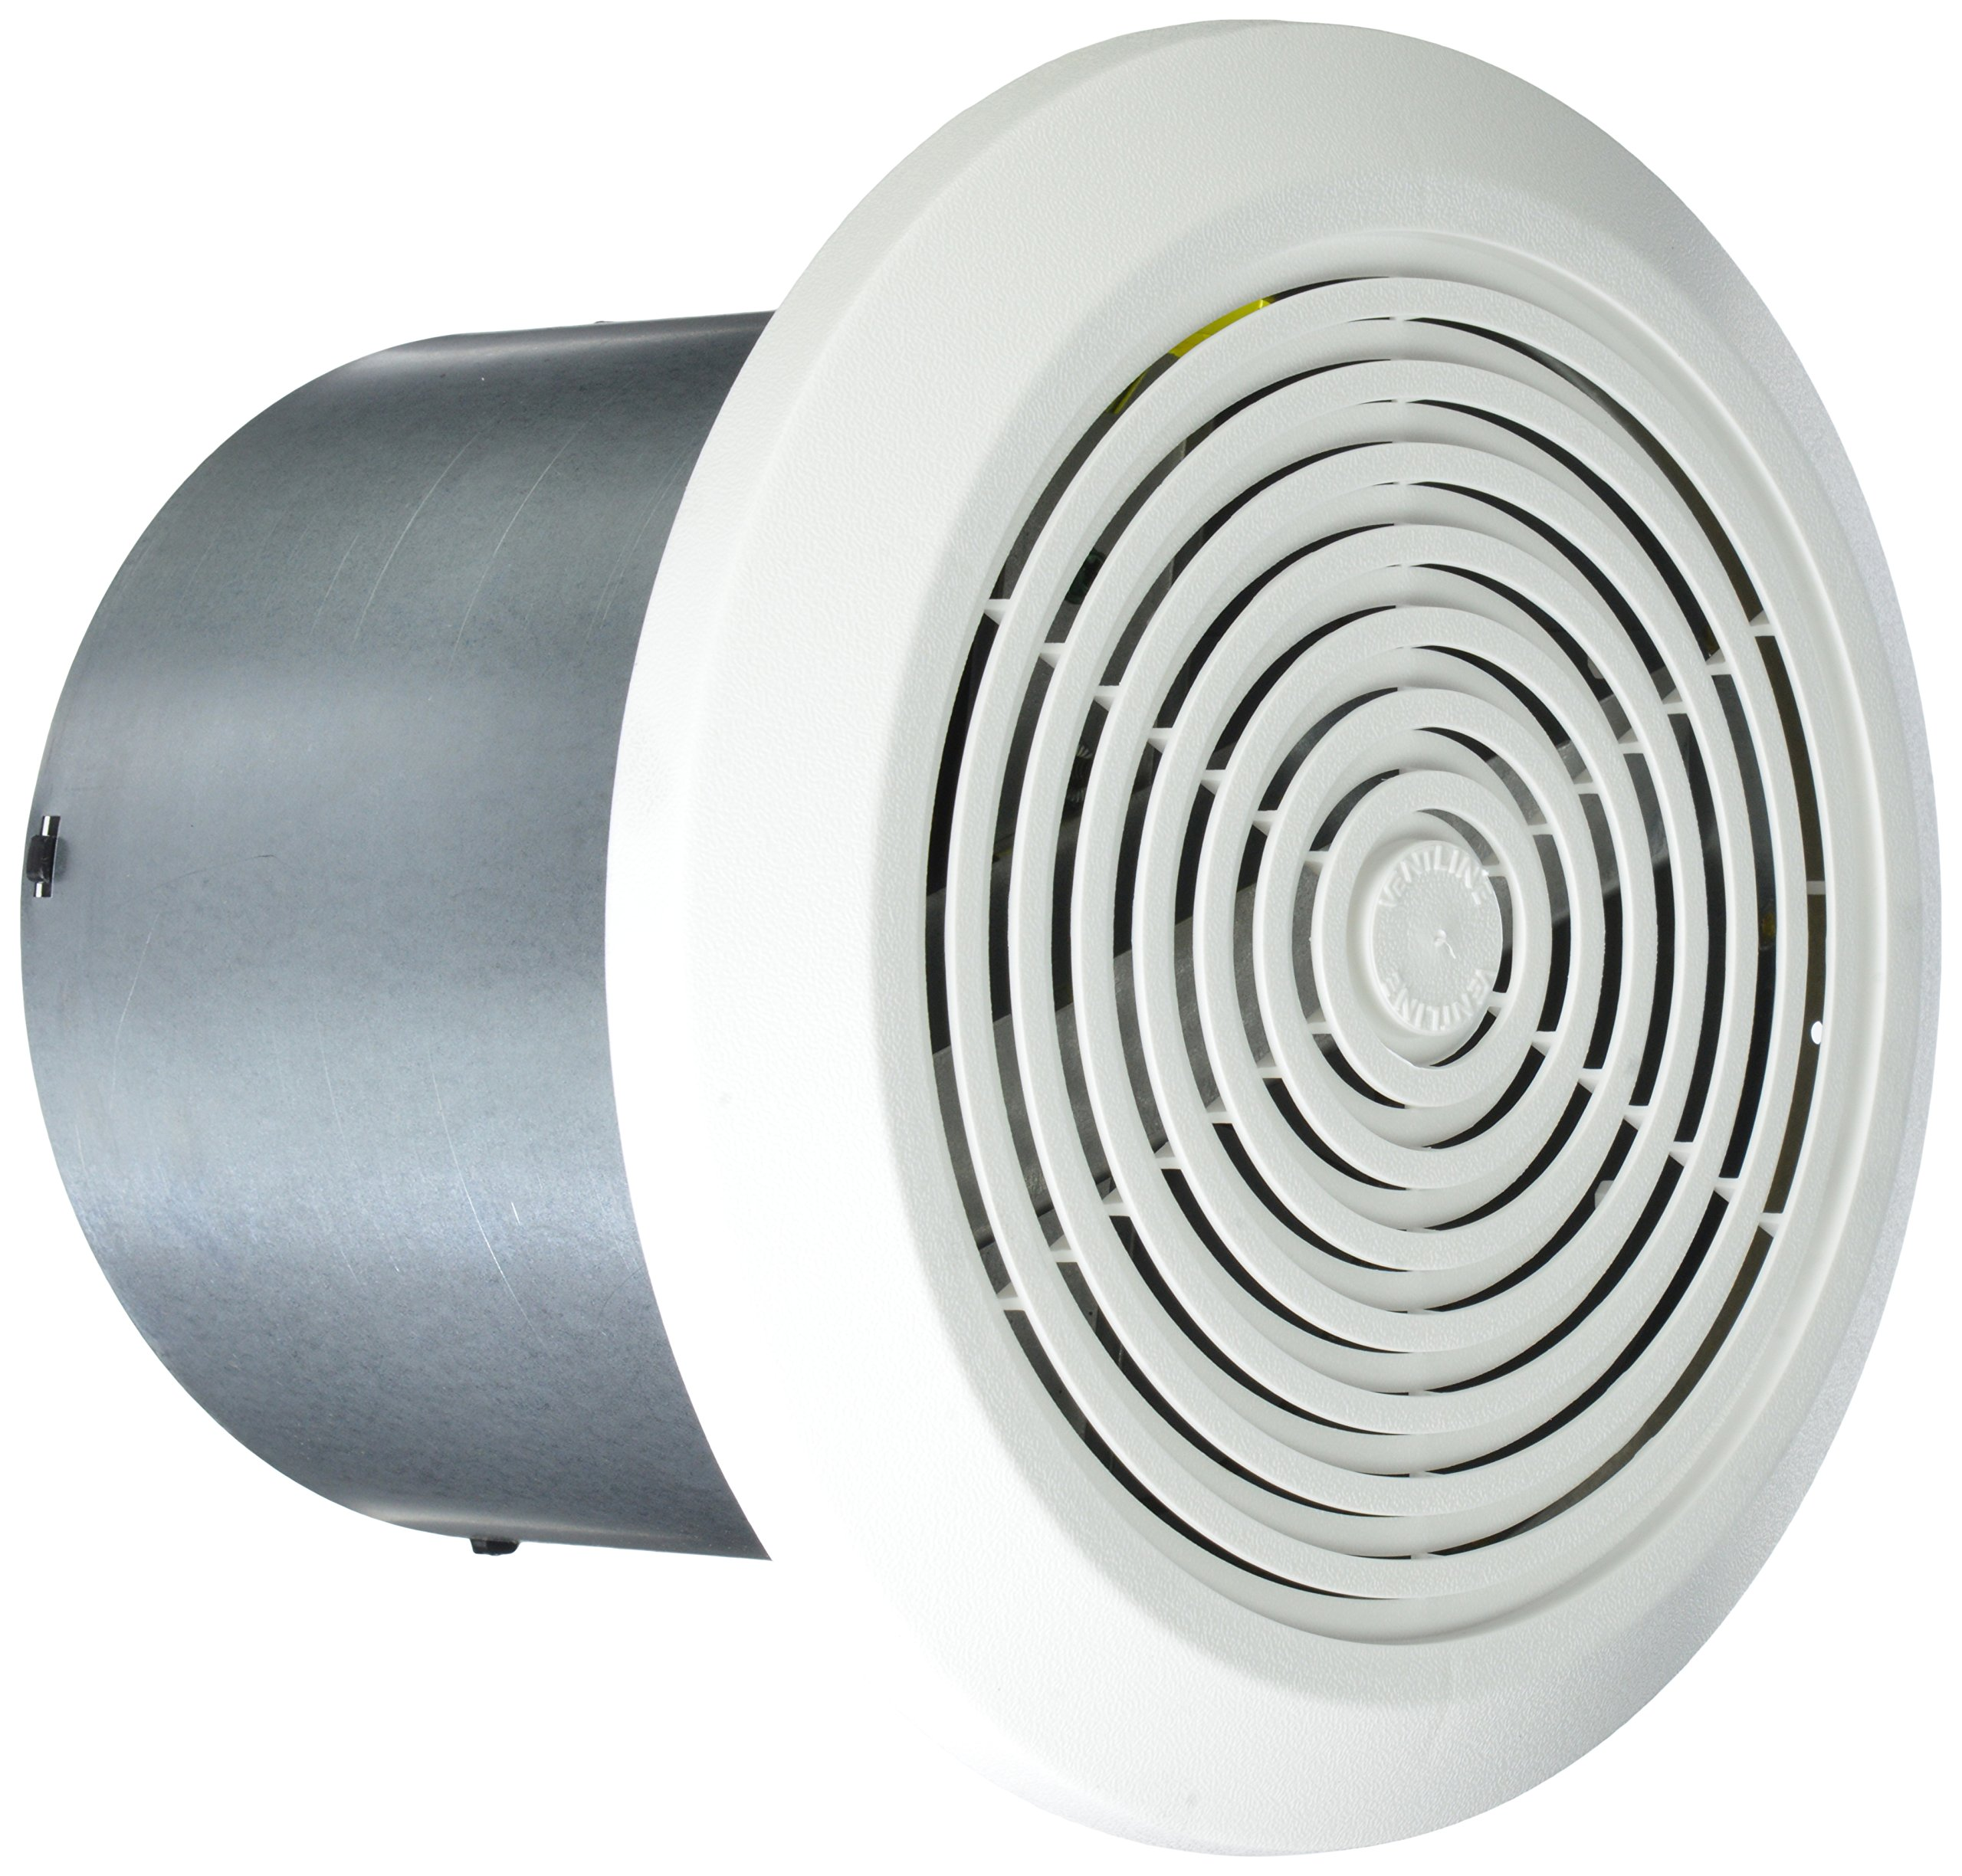 Ventline V2262 50 7 50 Cfm Ceiling Exhaust Fan Ebay